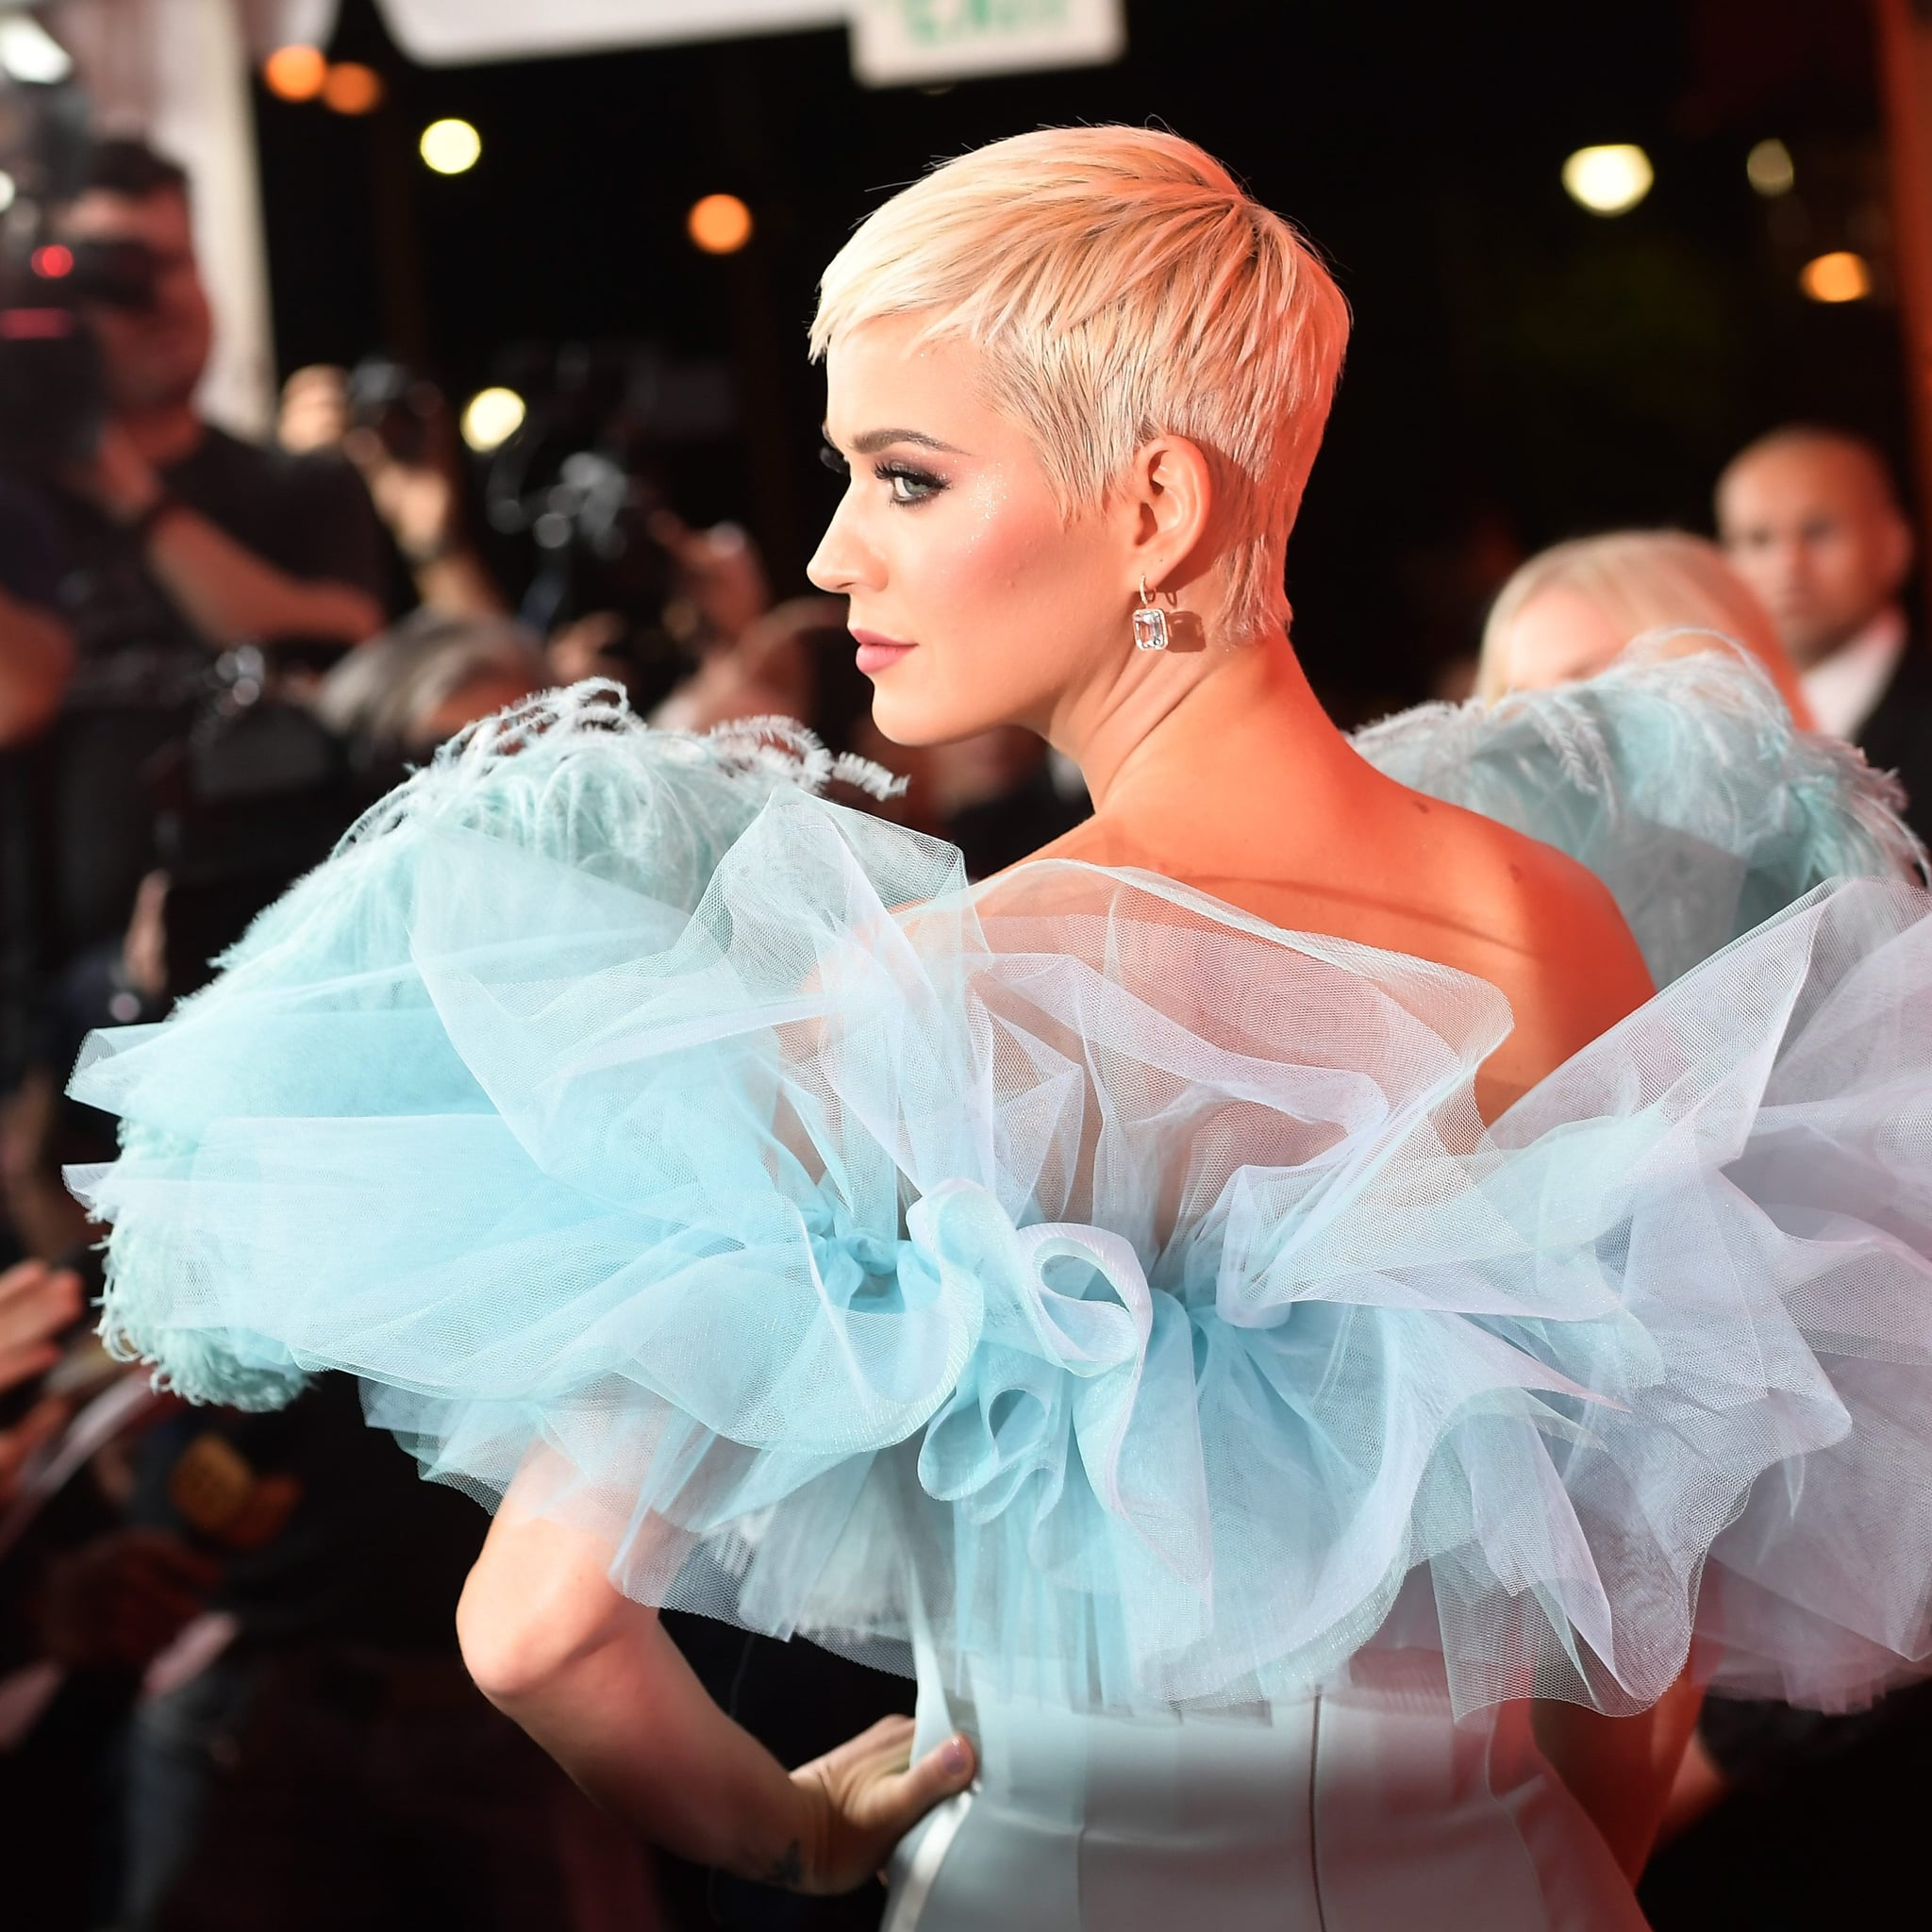 5989f39273d Katy Perry Quotes on Cutting Her Hair in Paper Magazine 2019 | POPSUGAR  Beauty